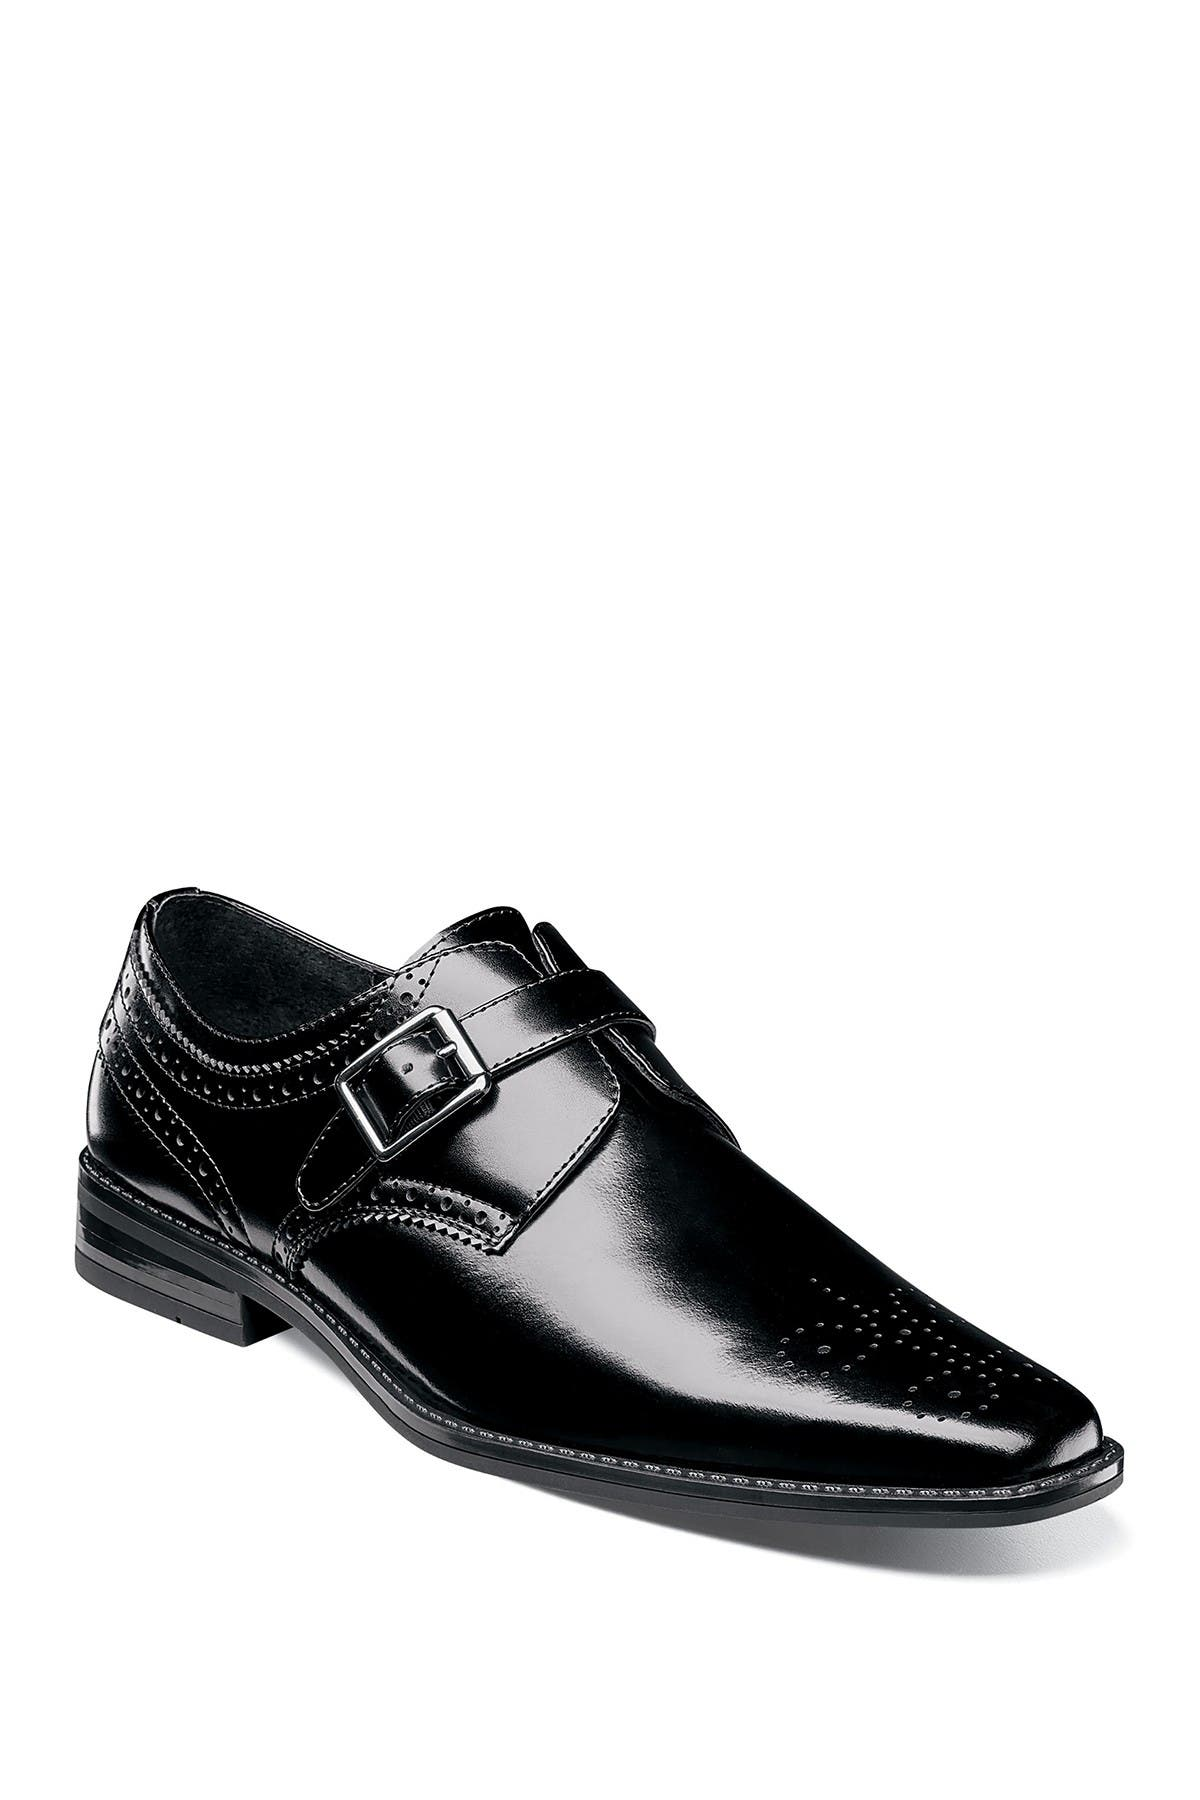 Image of Stacy Adams Kinsley Monk Strap Oxford